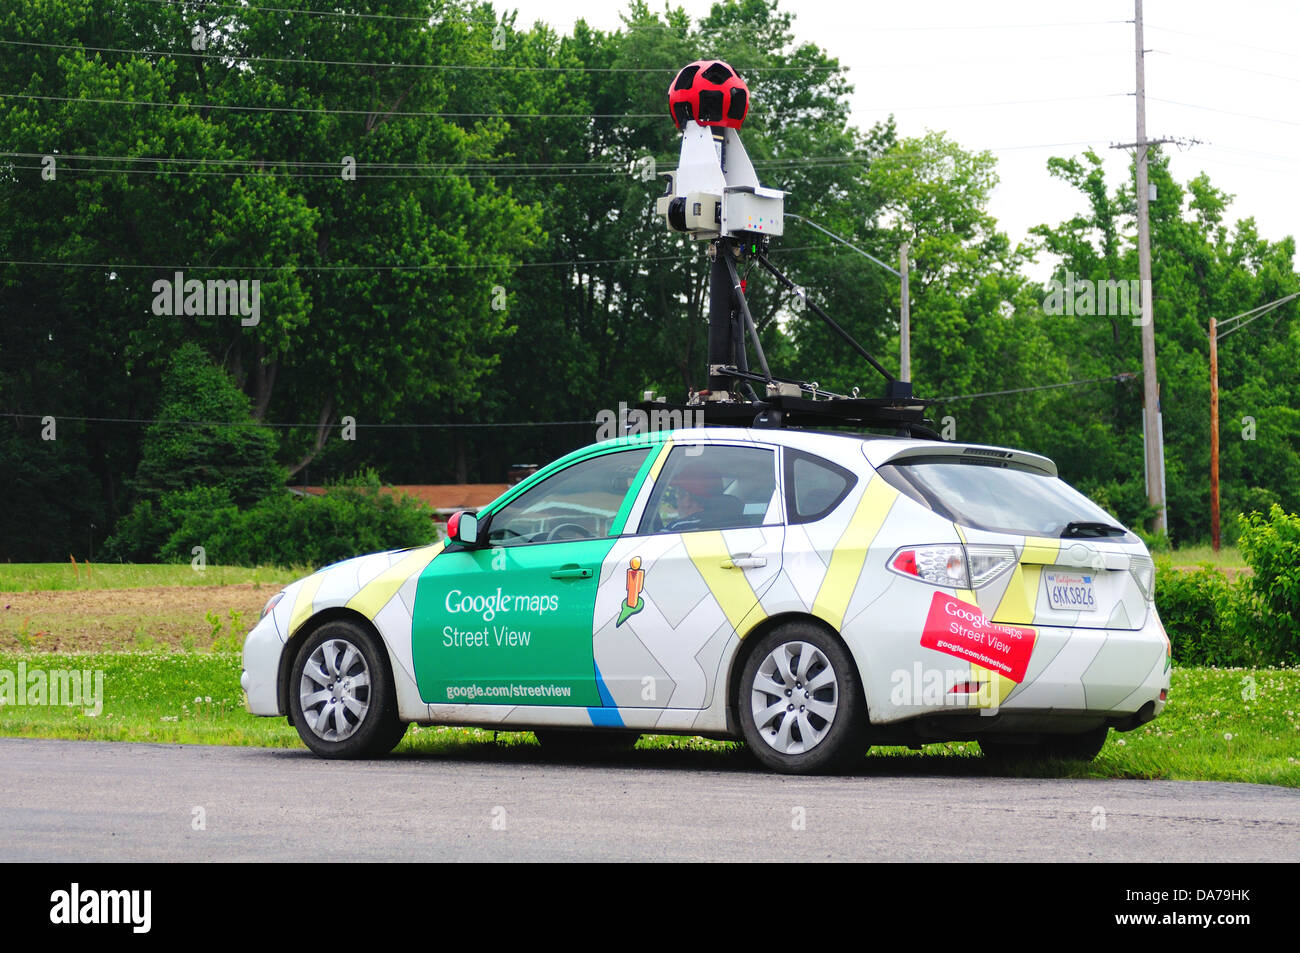 Google Maps Street View camera car - Stock Image